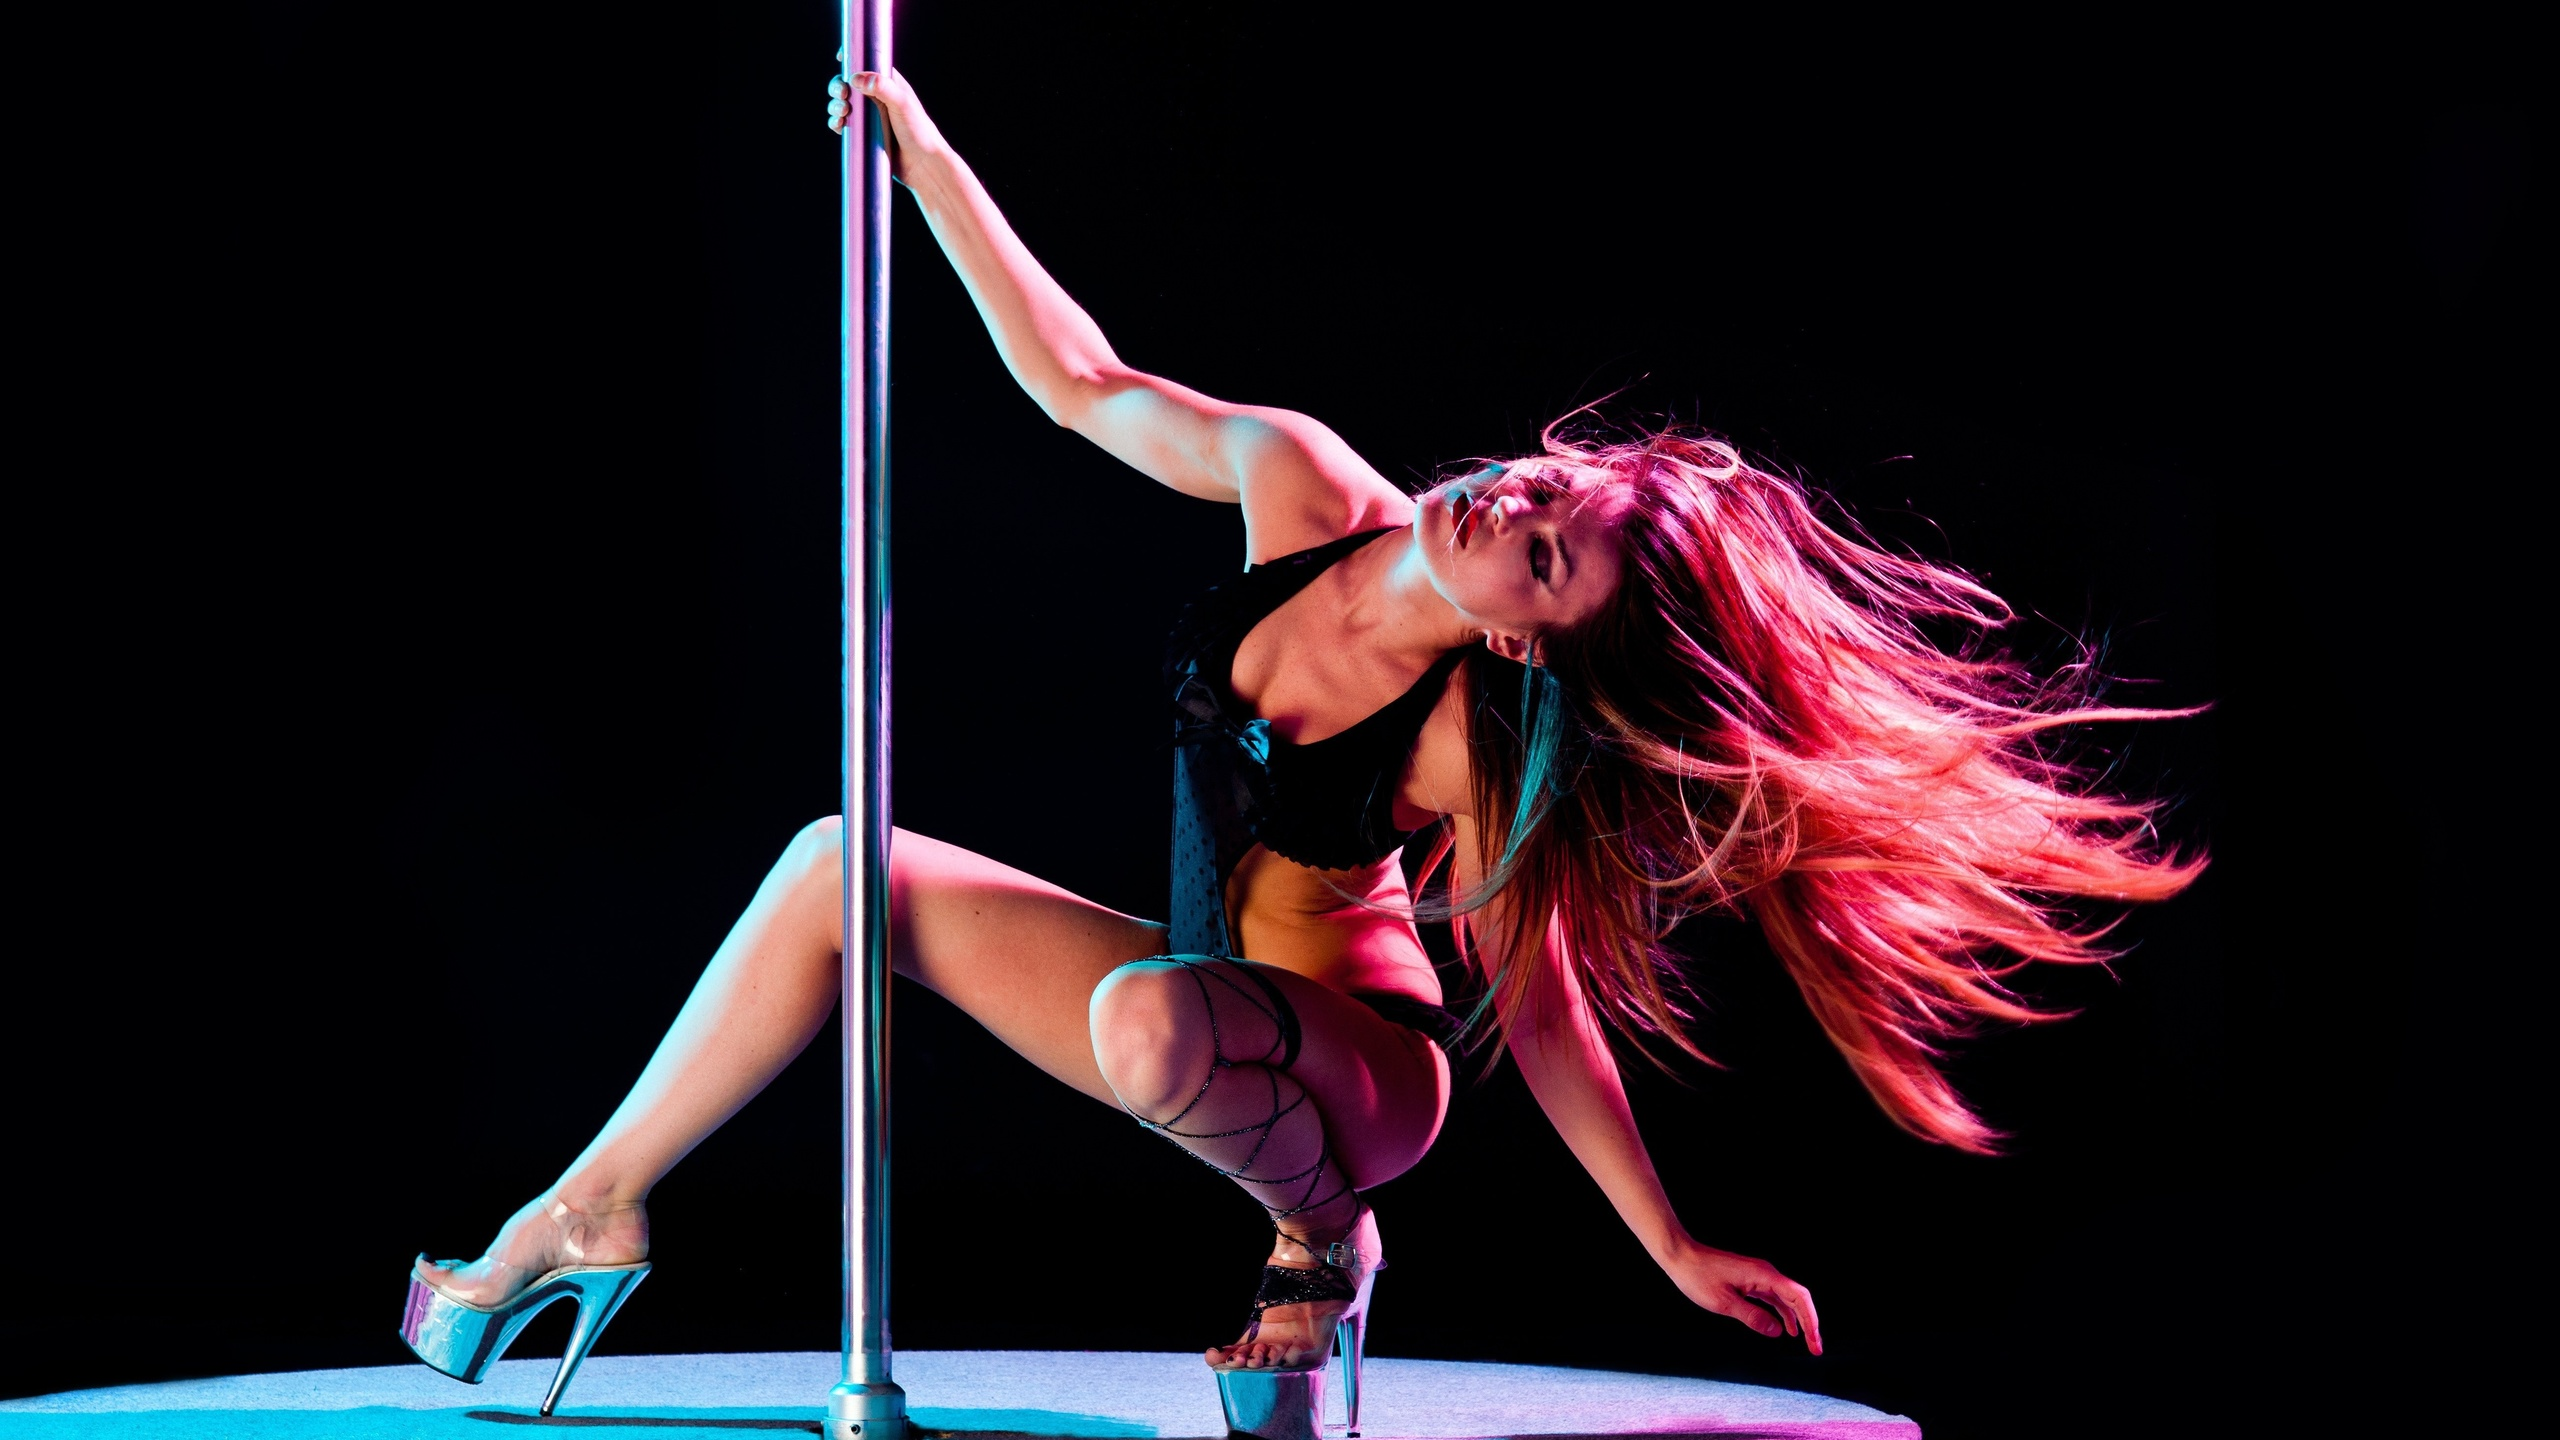 Pole dancing strippers in action